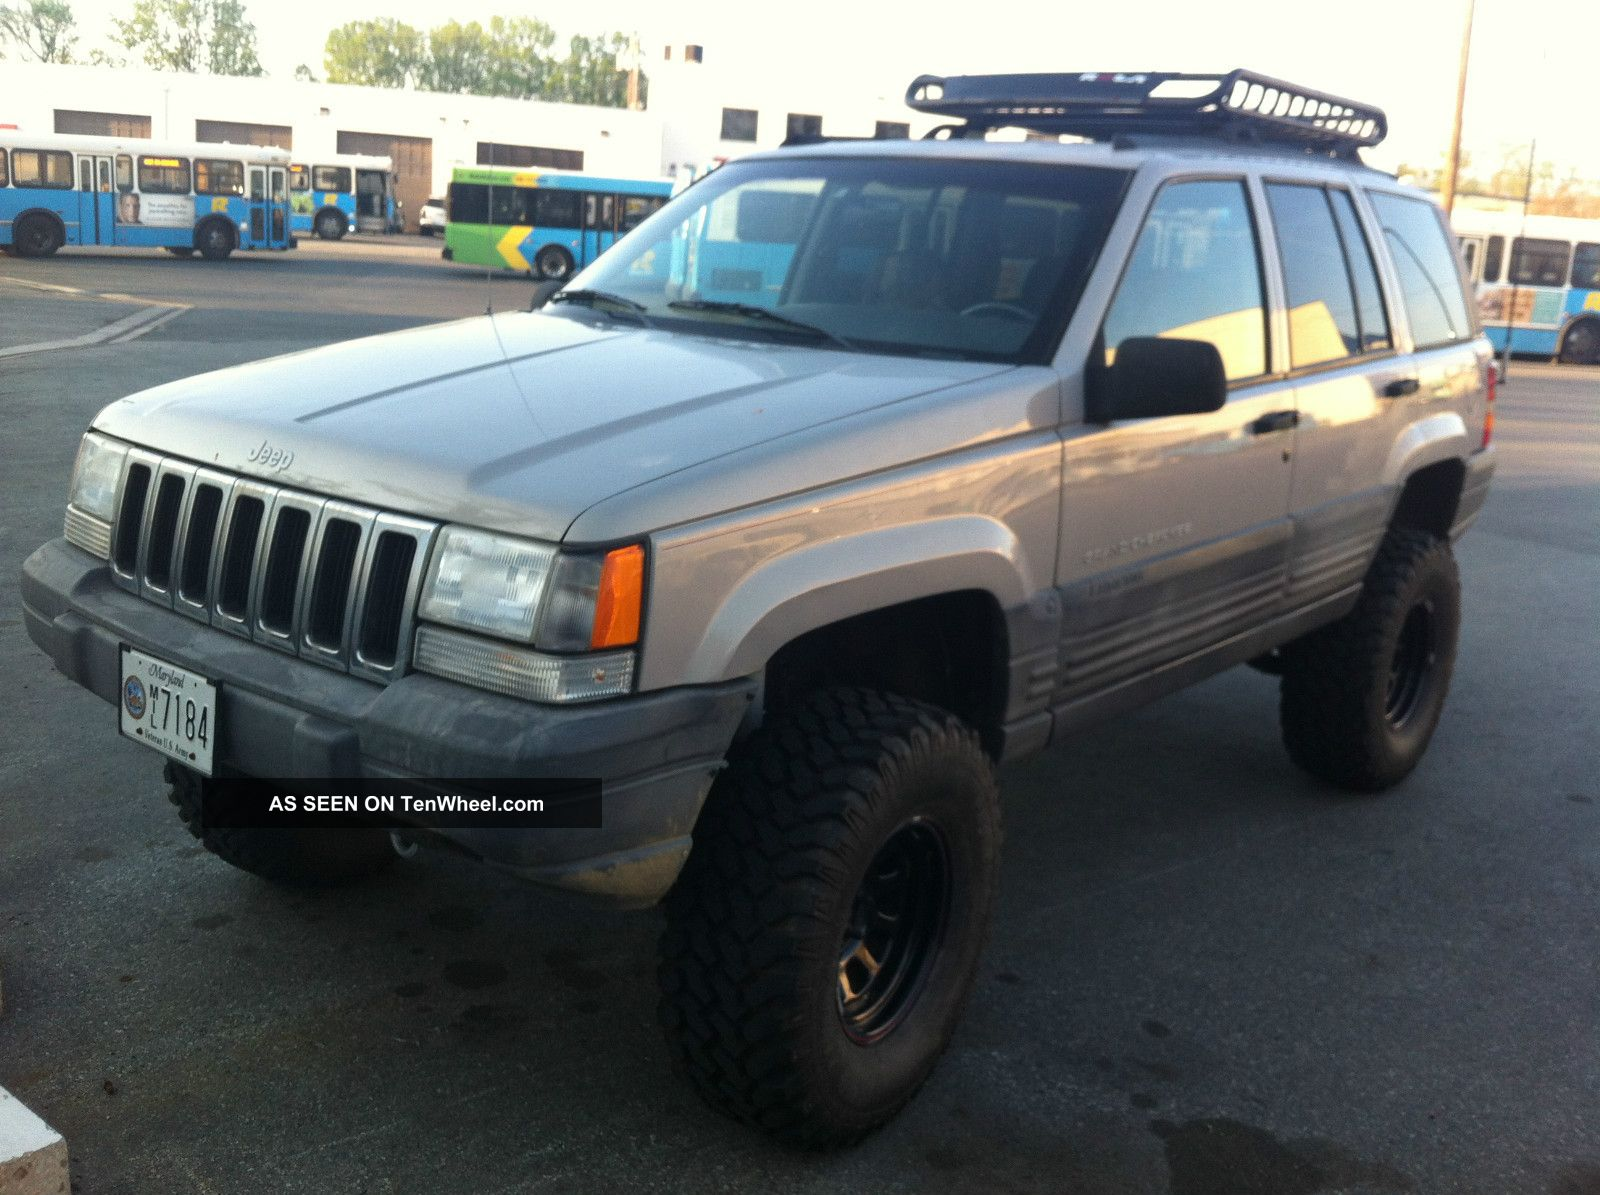 Wheel Offset 2000 Jeep Cherokee Super Aggressive 3 5 Suspension Lift 6 Custom Rims in addition Dakota Interior together with 1998 Jeep Cherokee moreover 93 Jeep Cherokee Sport Parts 7EaIHh5qVwBfGOAPNcGgeoMdLphCCyR1RxkrDm05BoY moreover 2000CherokeeD53120402645. on 98 jeep cherokee sport lifted